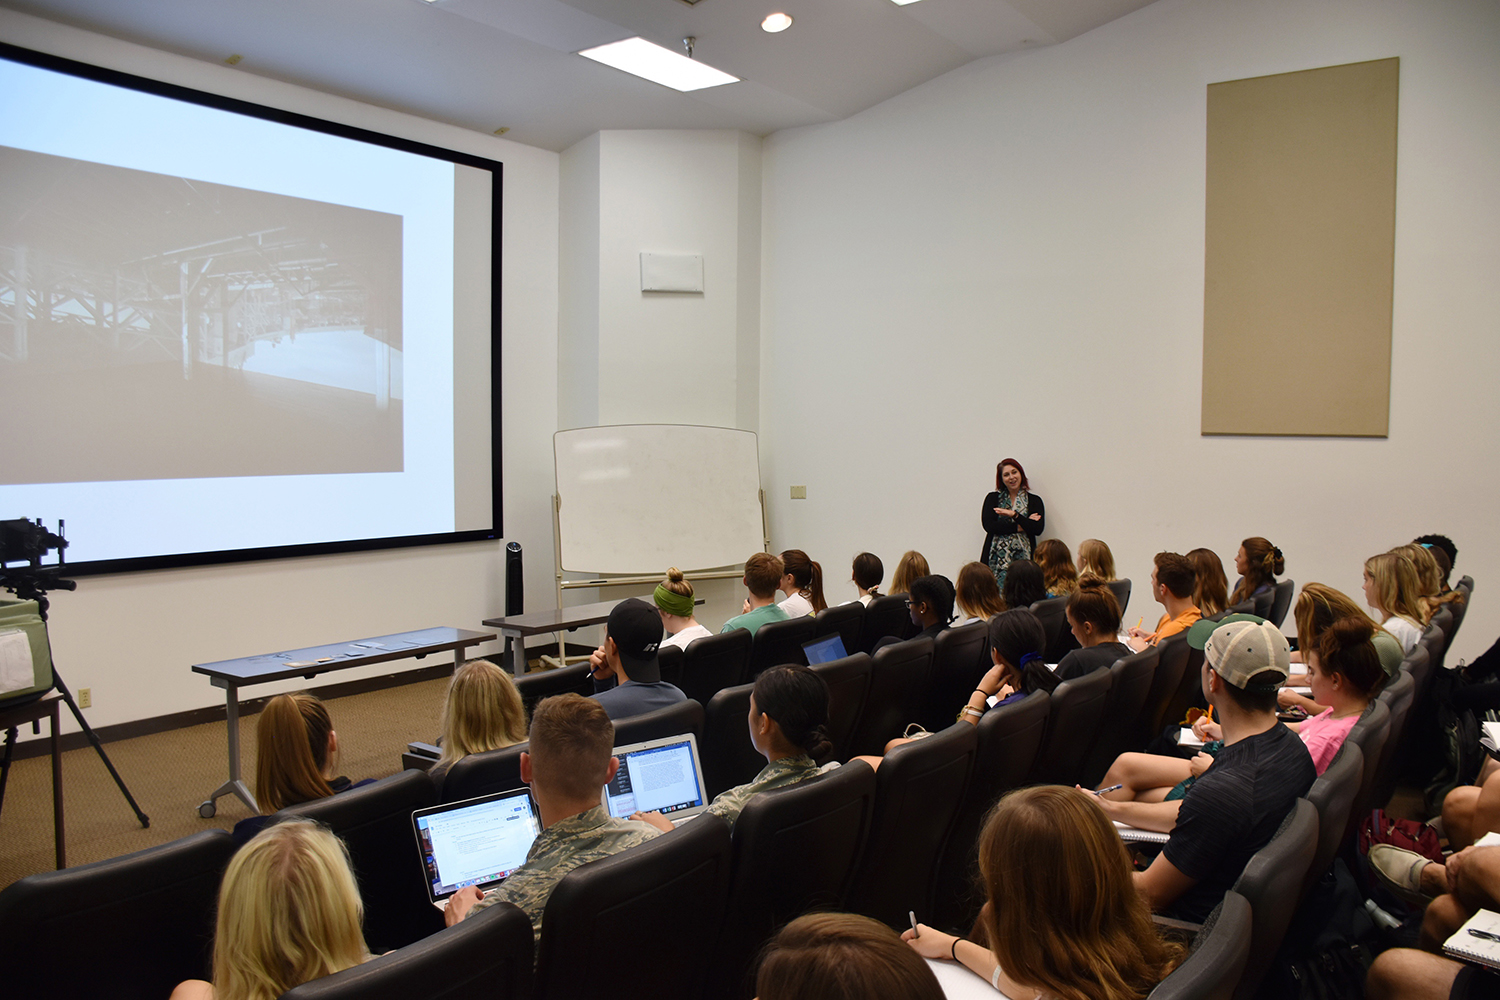 Professor Heather White teaching first year students how to understand and appreciate the art of photography.